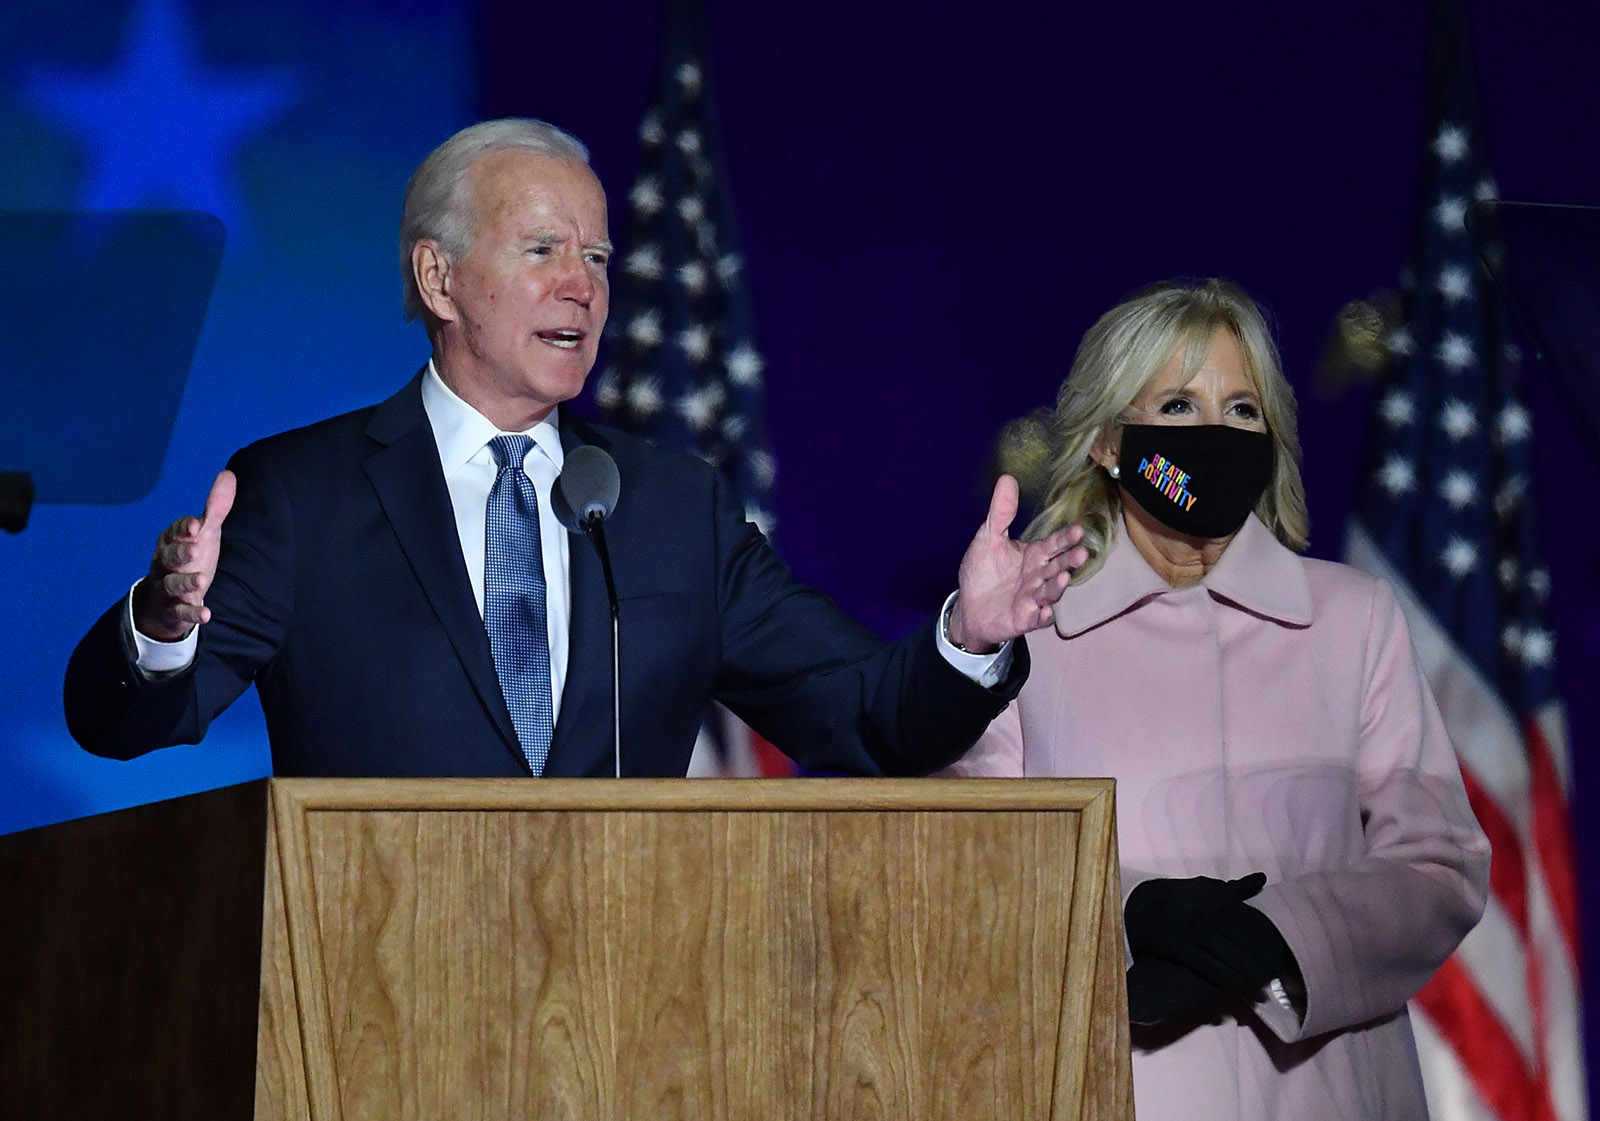 Democratic presidential nominee Joe Biden along with his wife Jill Biden speaks during election night at the Chase Center in Wilmington, Delaware, early on November 4.